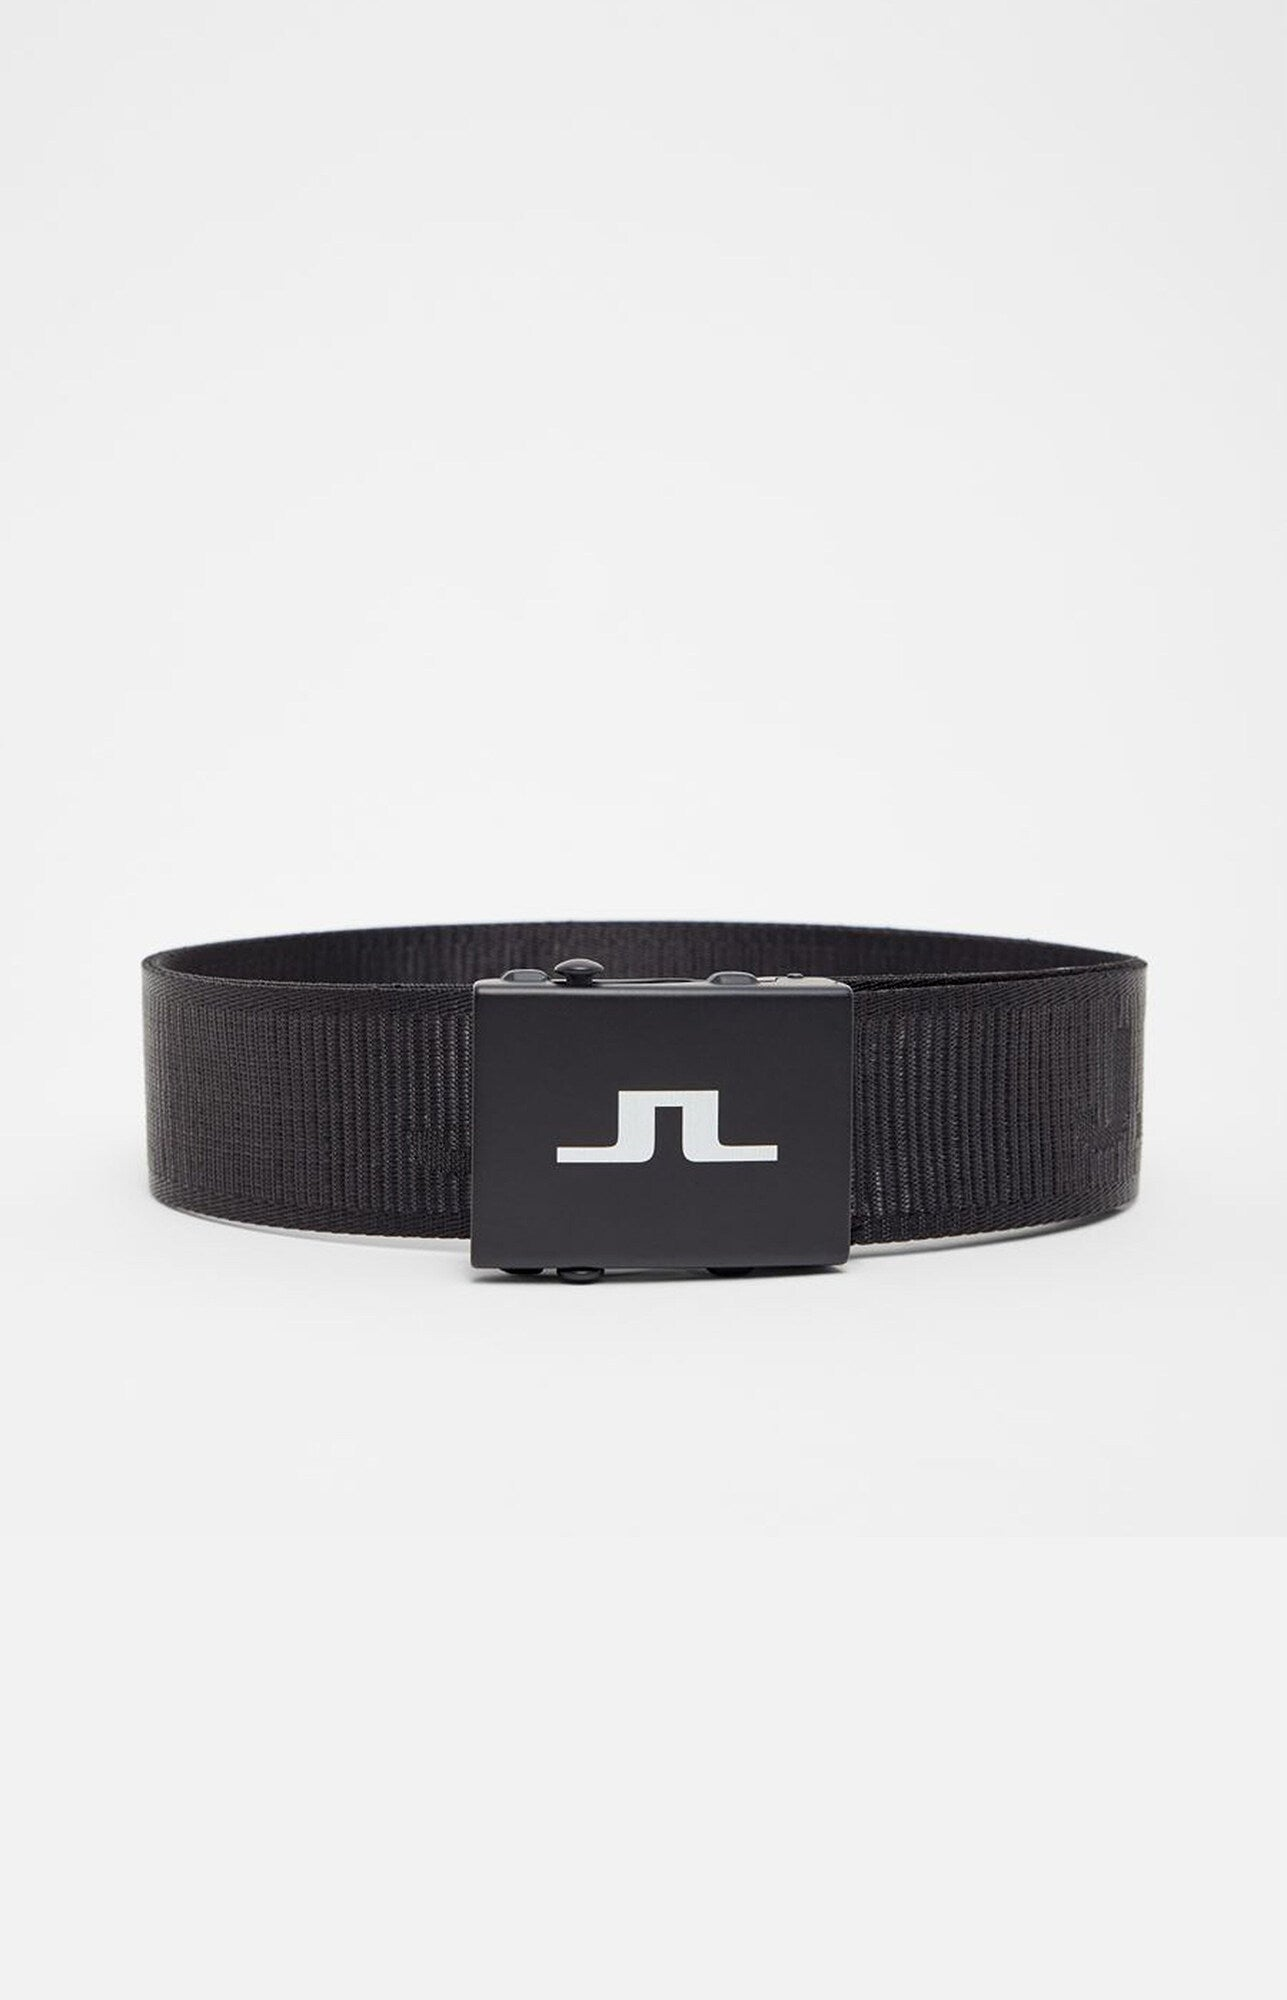 제이린드버그 번트 벨트 J Lindeberg Bernt Golf Belt - Black